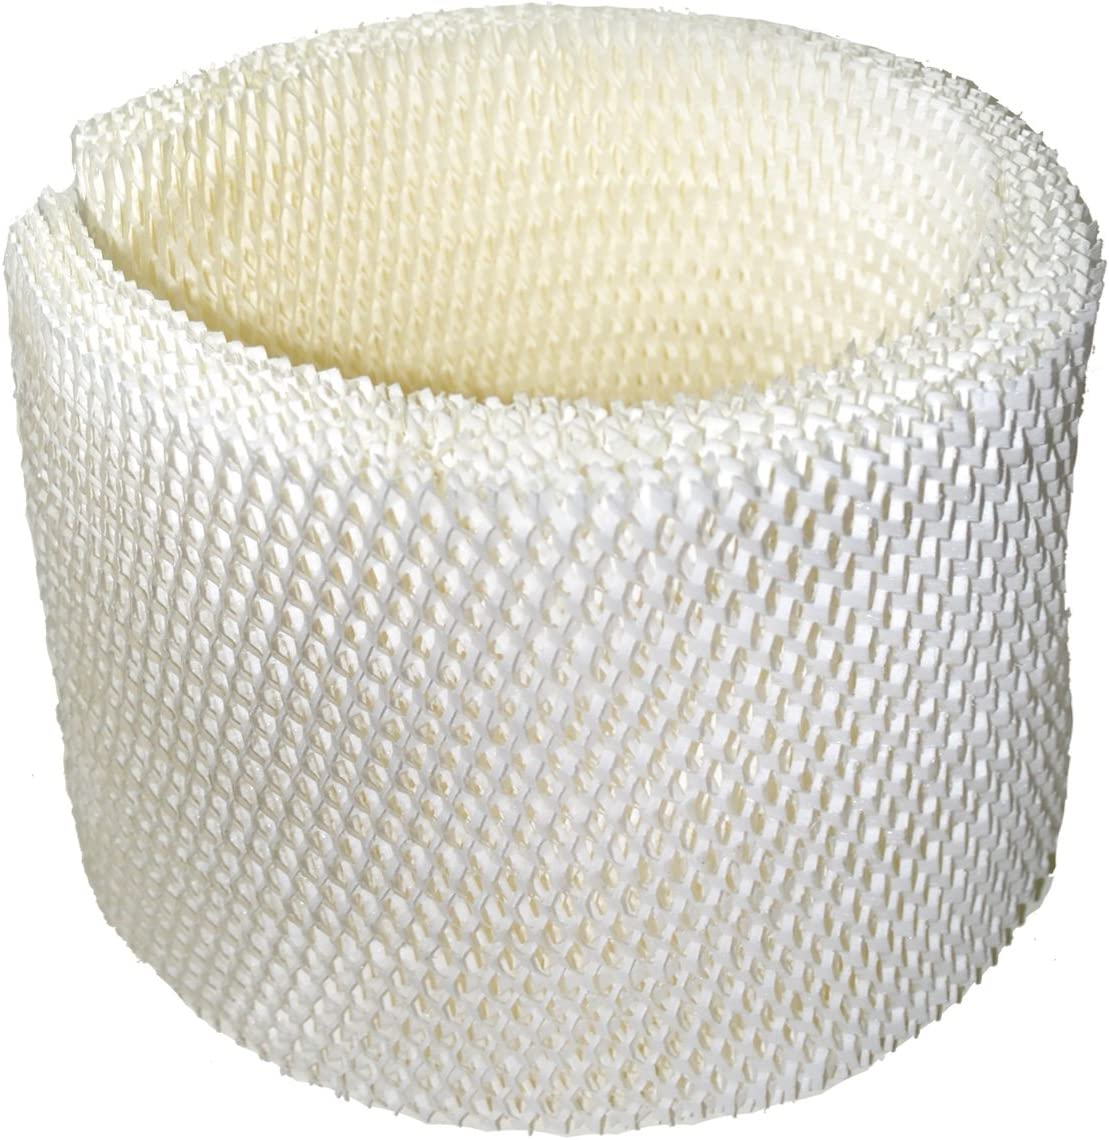 HQRP Wick Filter for Kenmore Sears Maf2, Ef2, 15508, 03215508000p; 15408, 154080, 17006, 29706 Humidifier